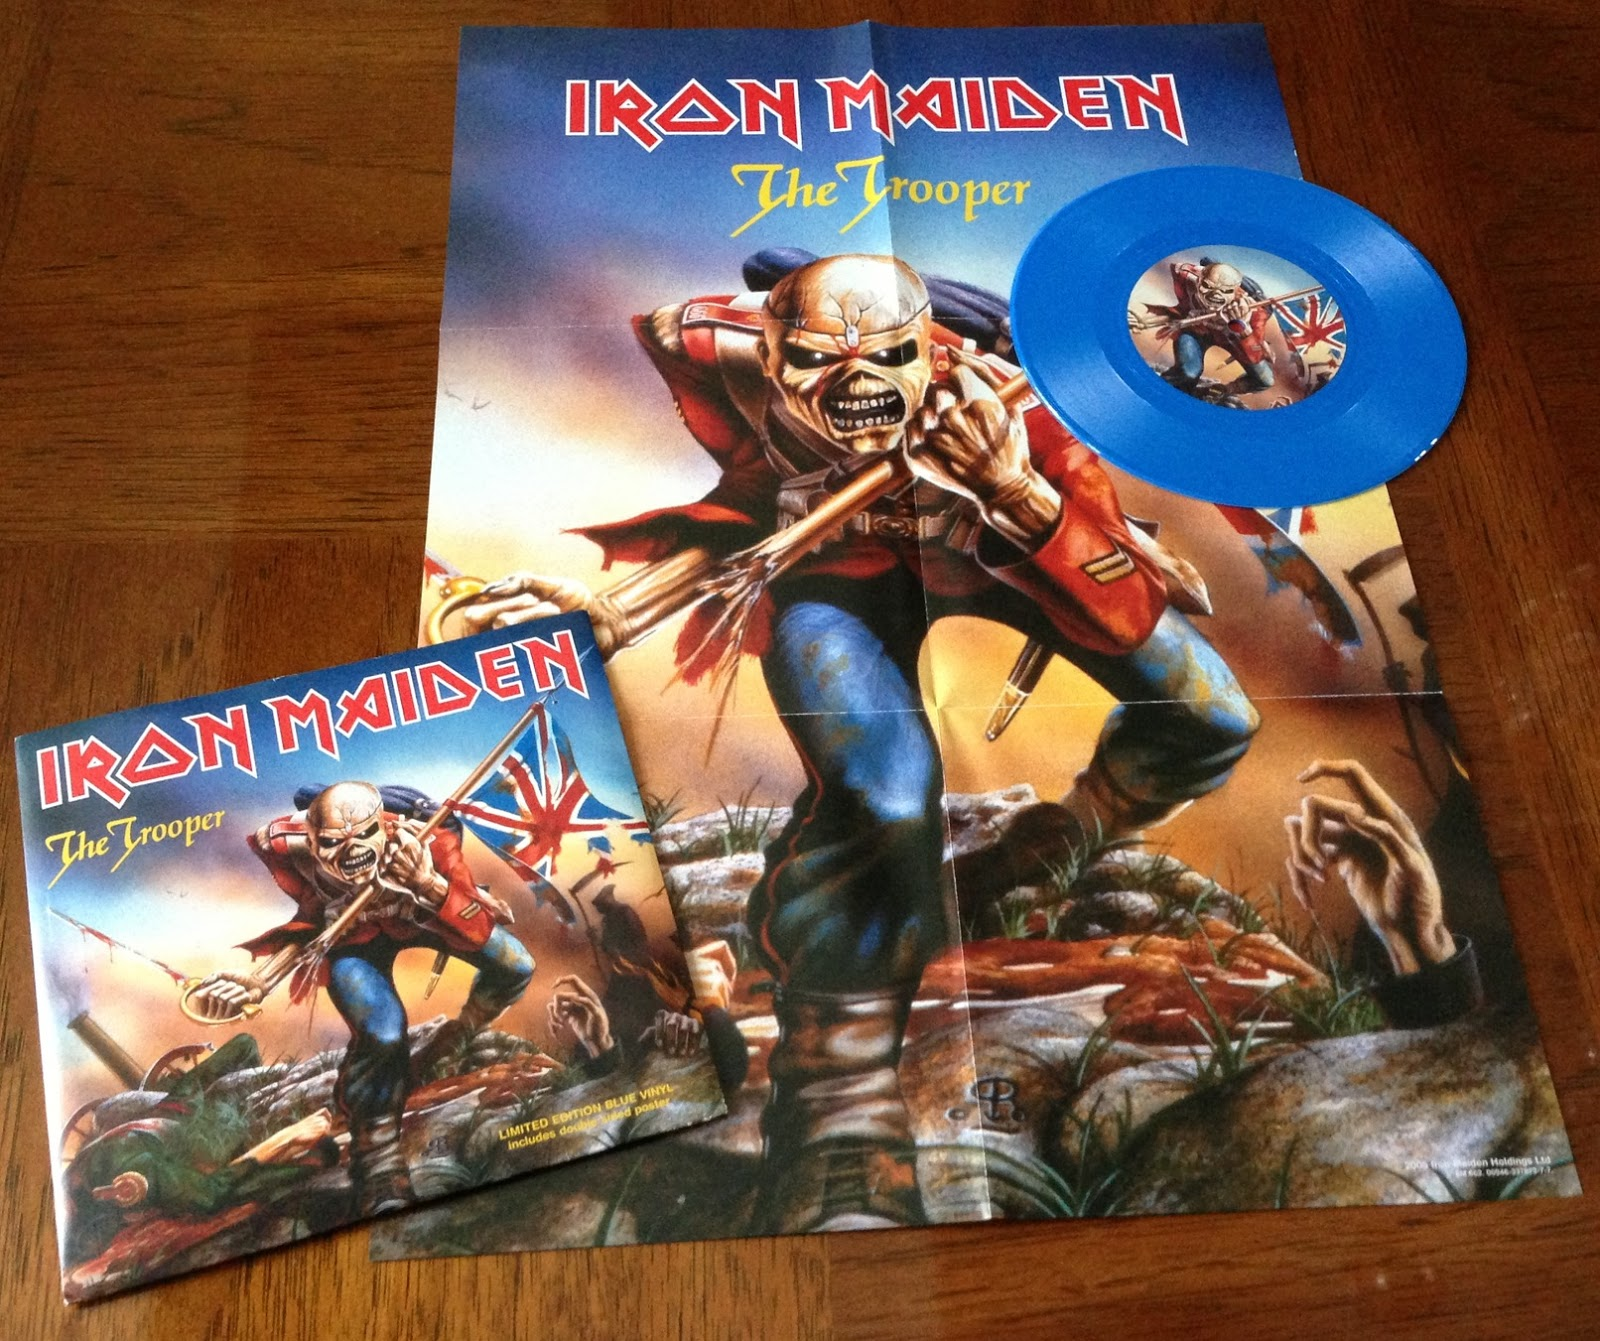 To Be Honest Both Records Are Not Different Enough Justify Double Dipping Into The Iron Maiden Merch Kingdom Unless You A Mega Fan Like Myself